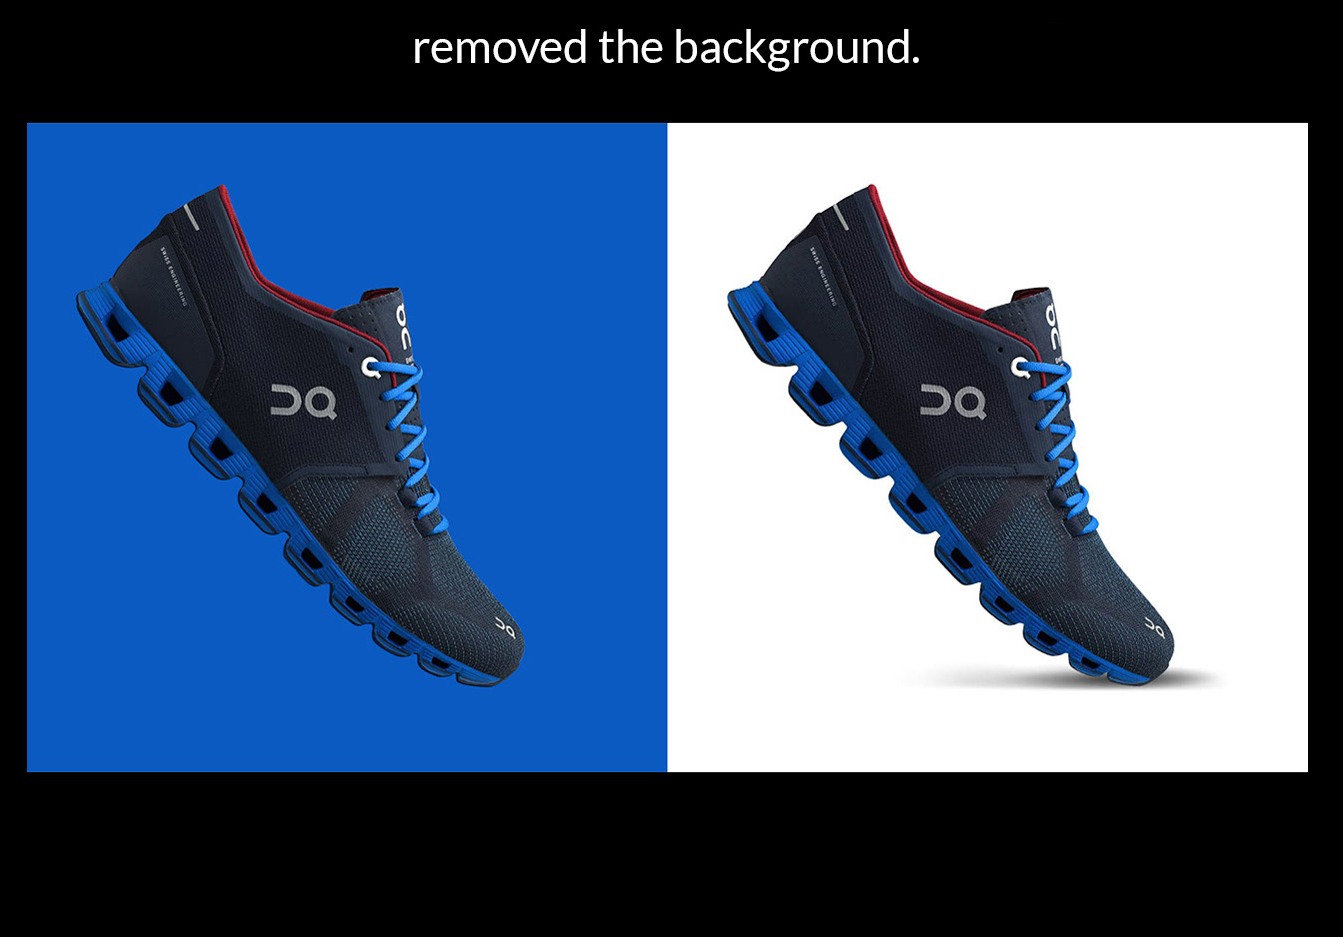 photoshop editing clipping path background removal from photo